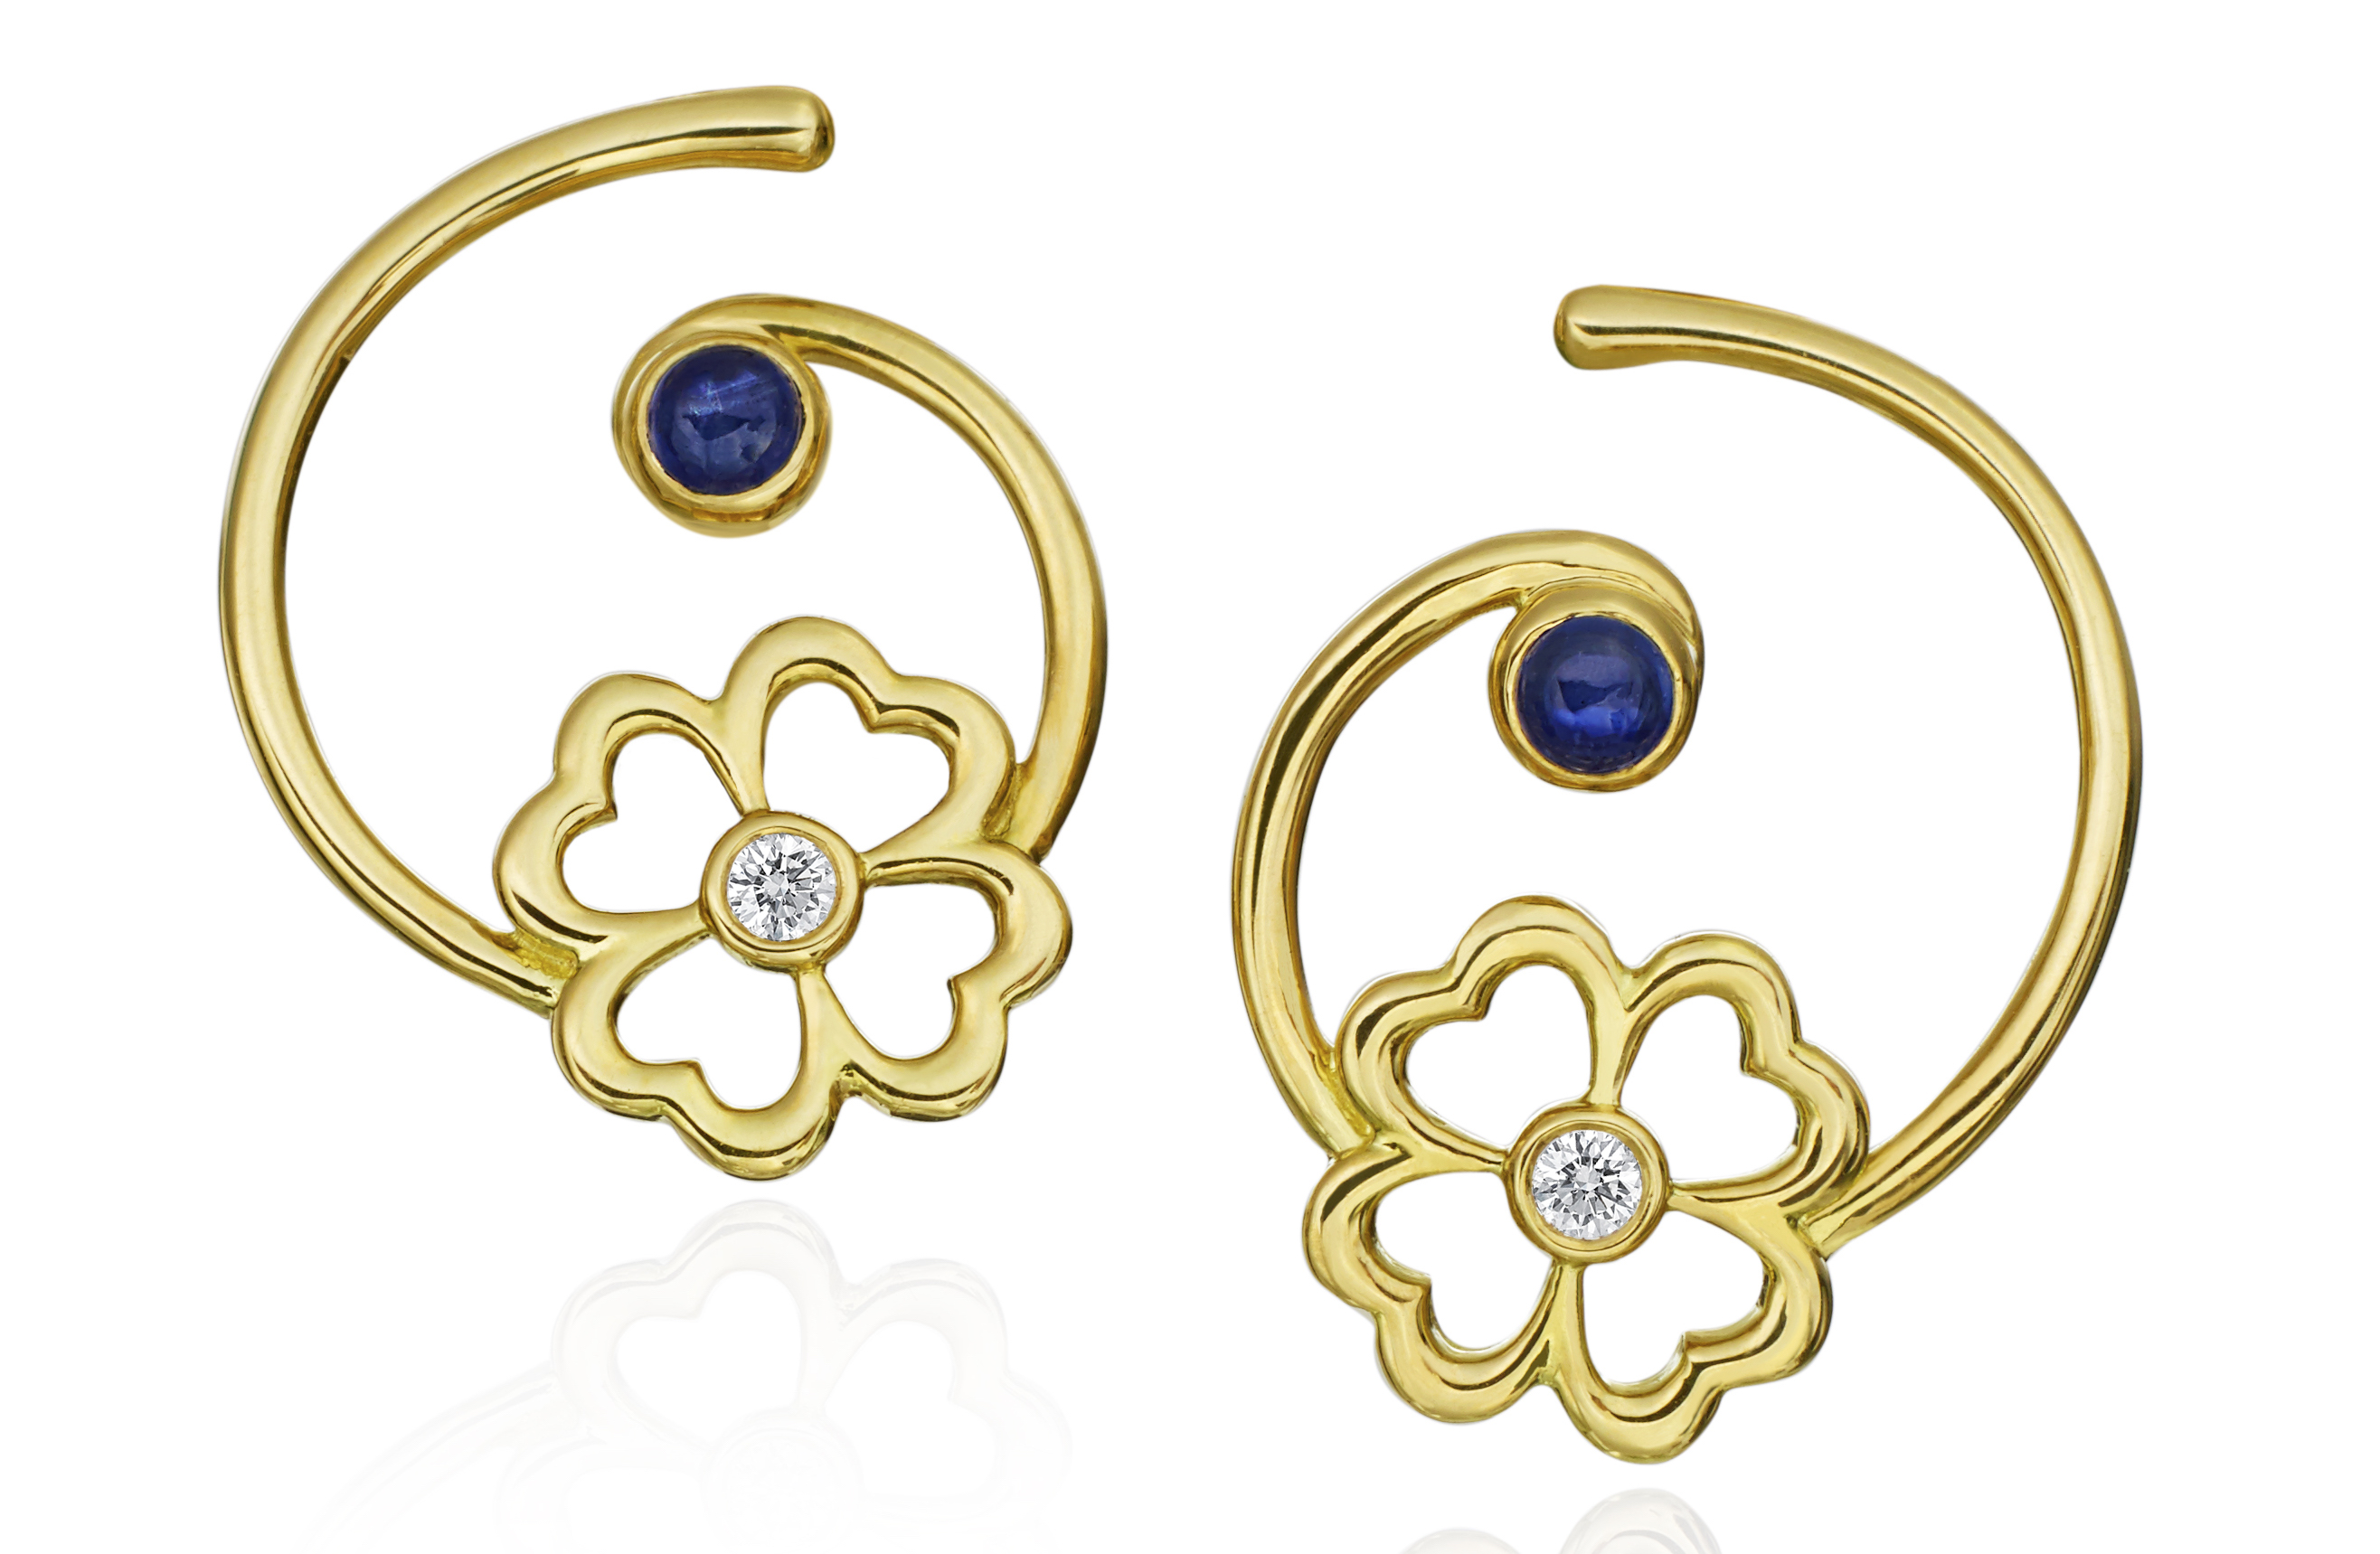 Gumuchian G Boutique earrings